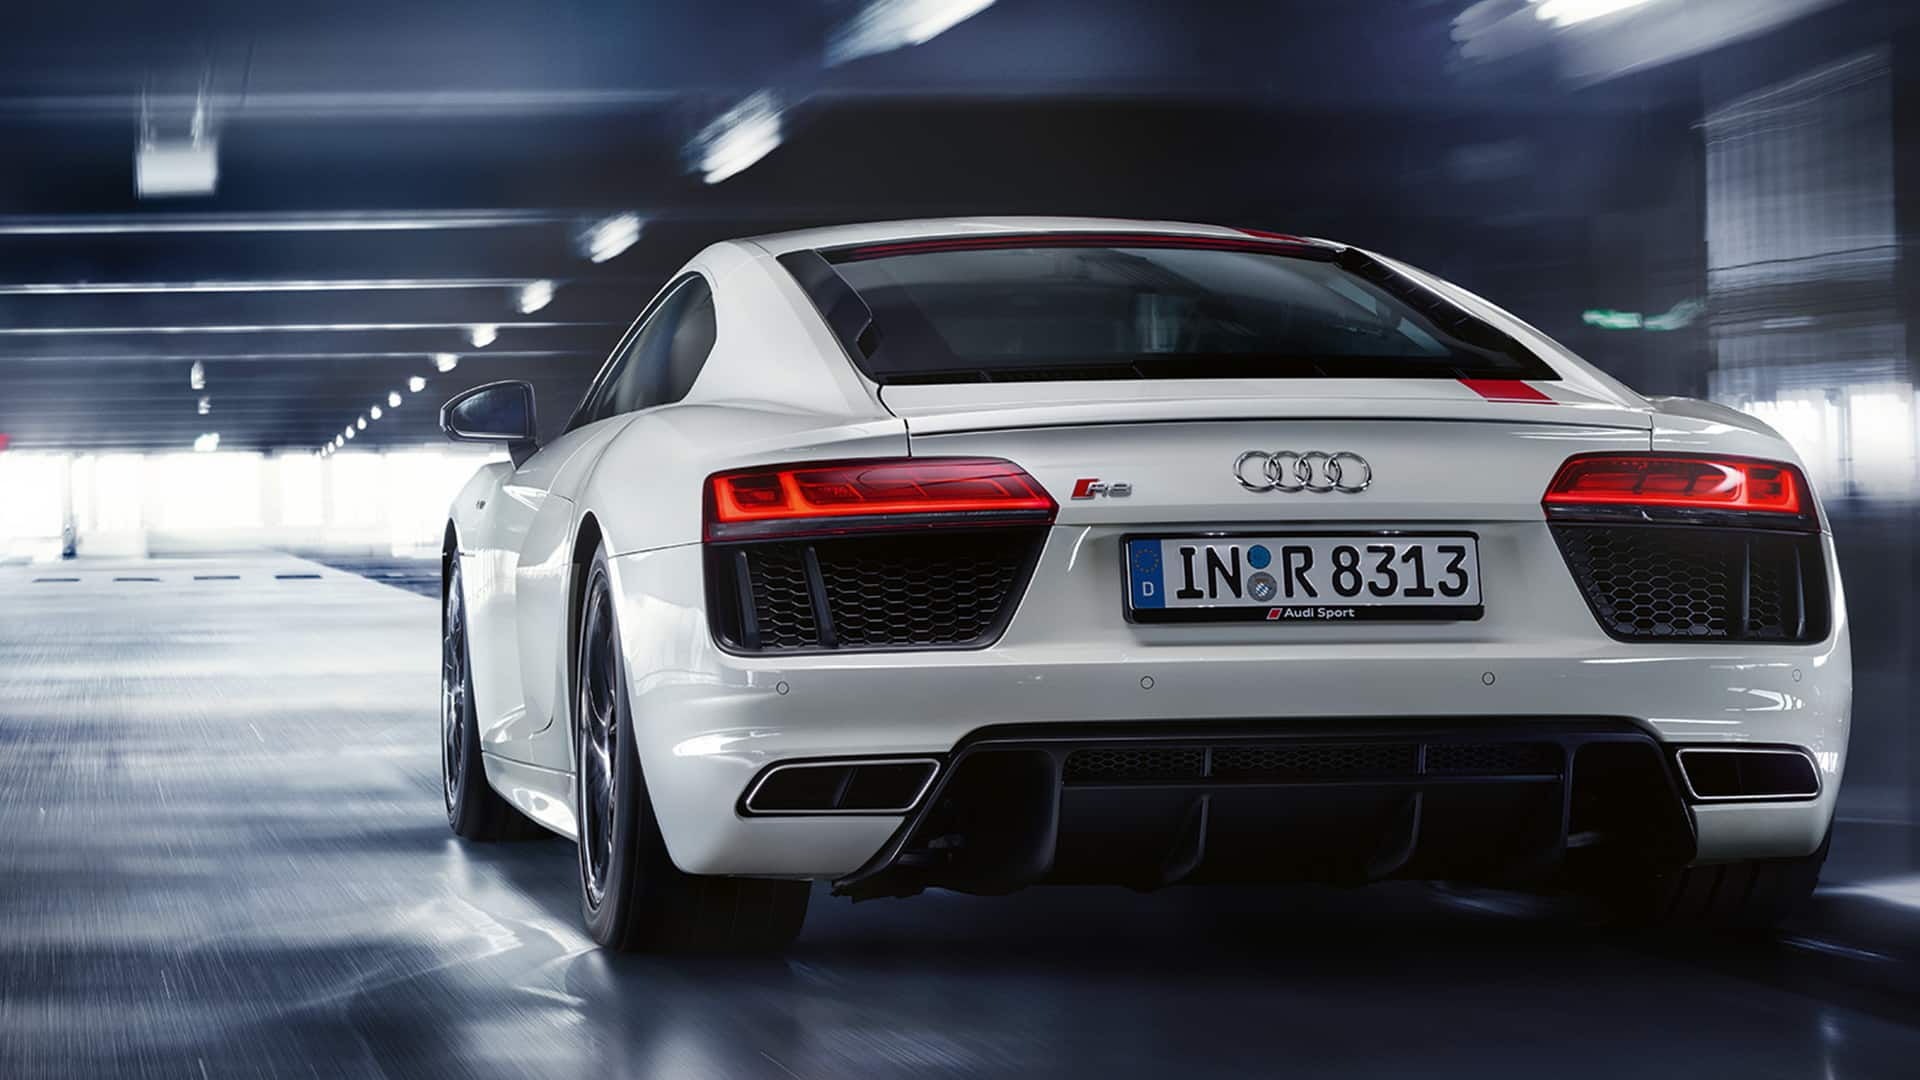 Bold proportions dominate the rear of the audi r8 coup v10 rws however overall it has become 50 kilos lighter compared to the audi r8 coup v10 with